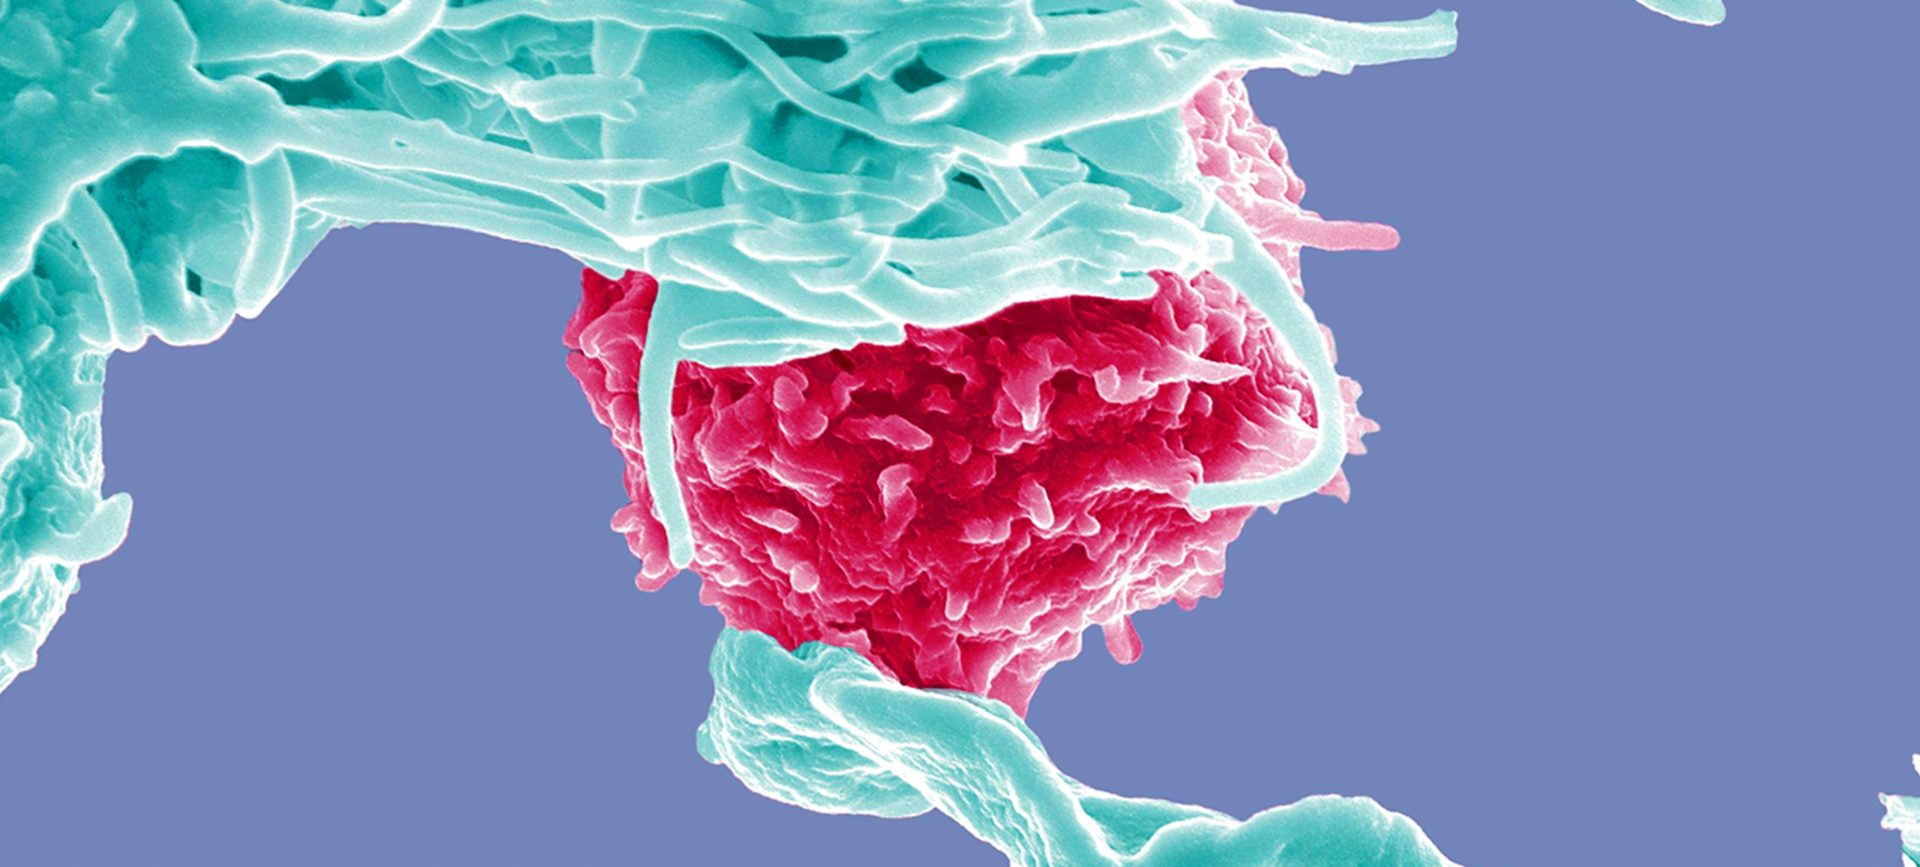 Dendritic cell up close.